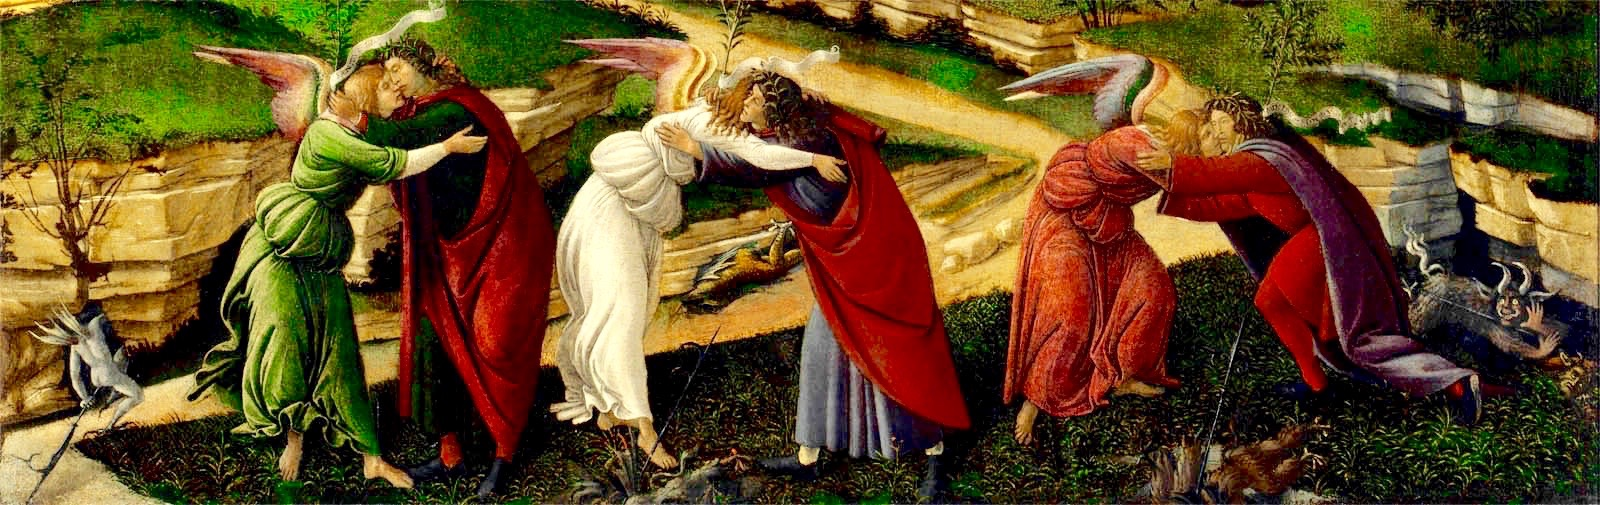 Sandro Botticelli Natività mistica Mystic Nativity, 1501